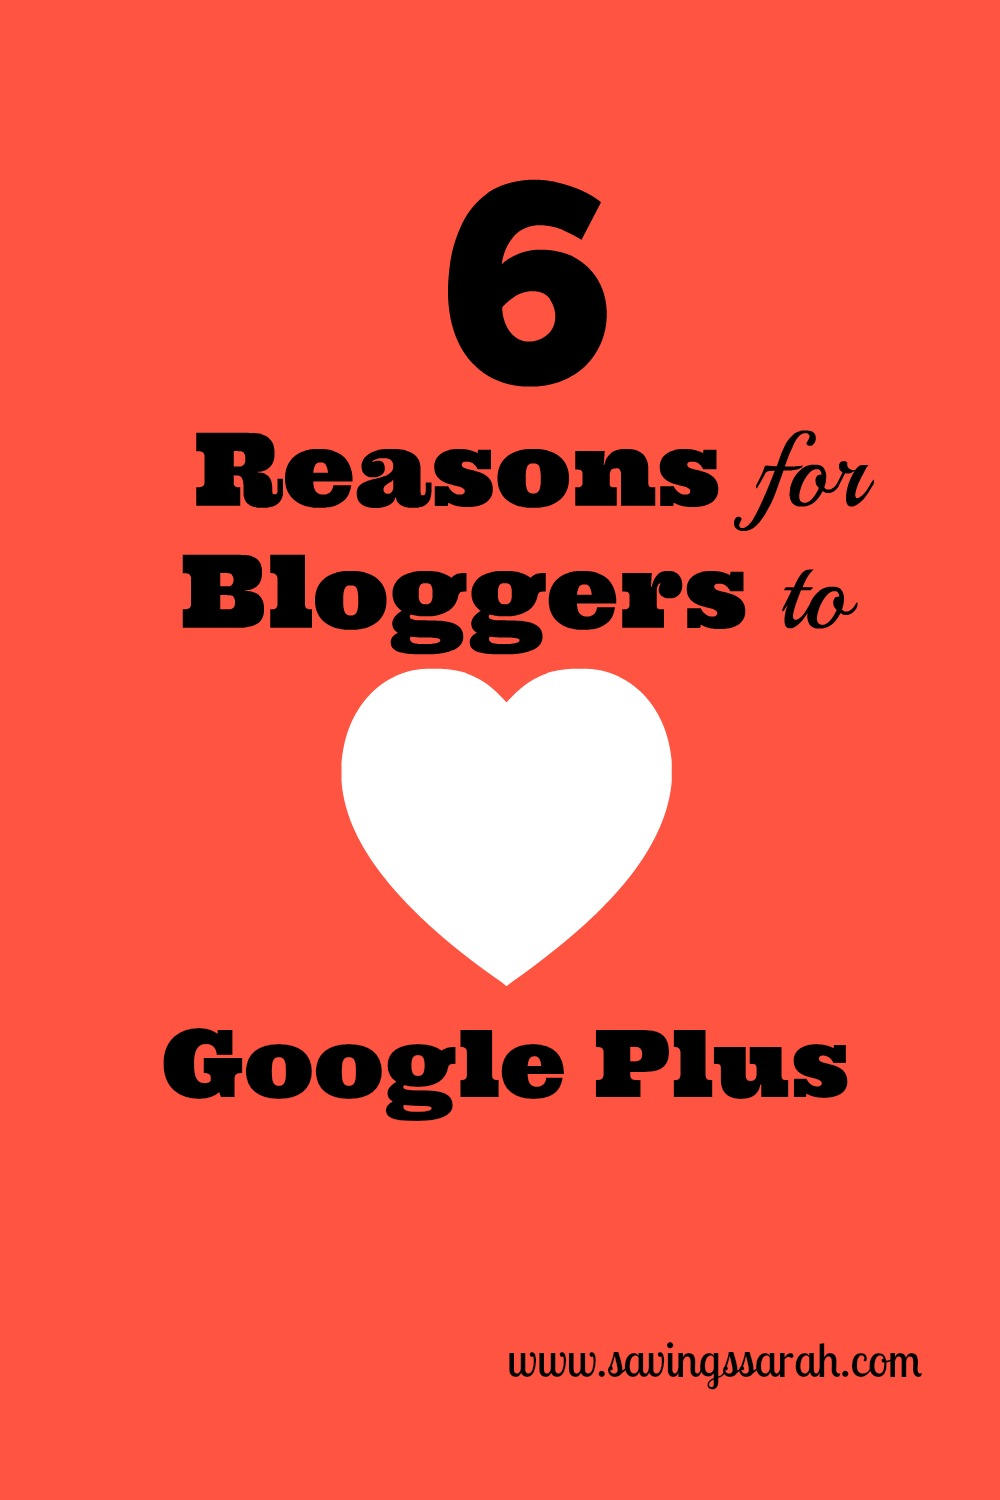 6 Reasons for Bloggers to Use Google Plus